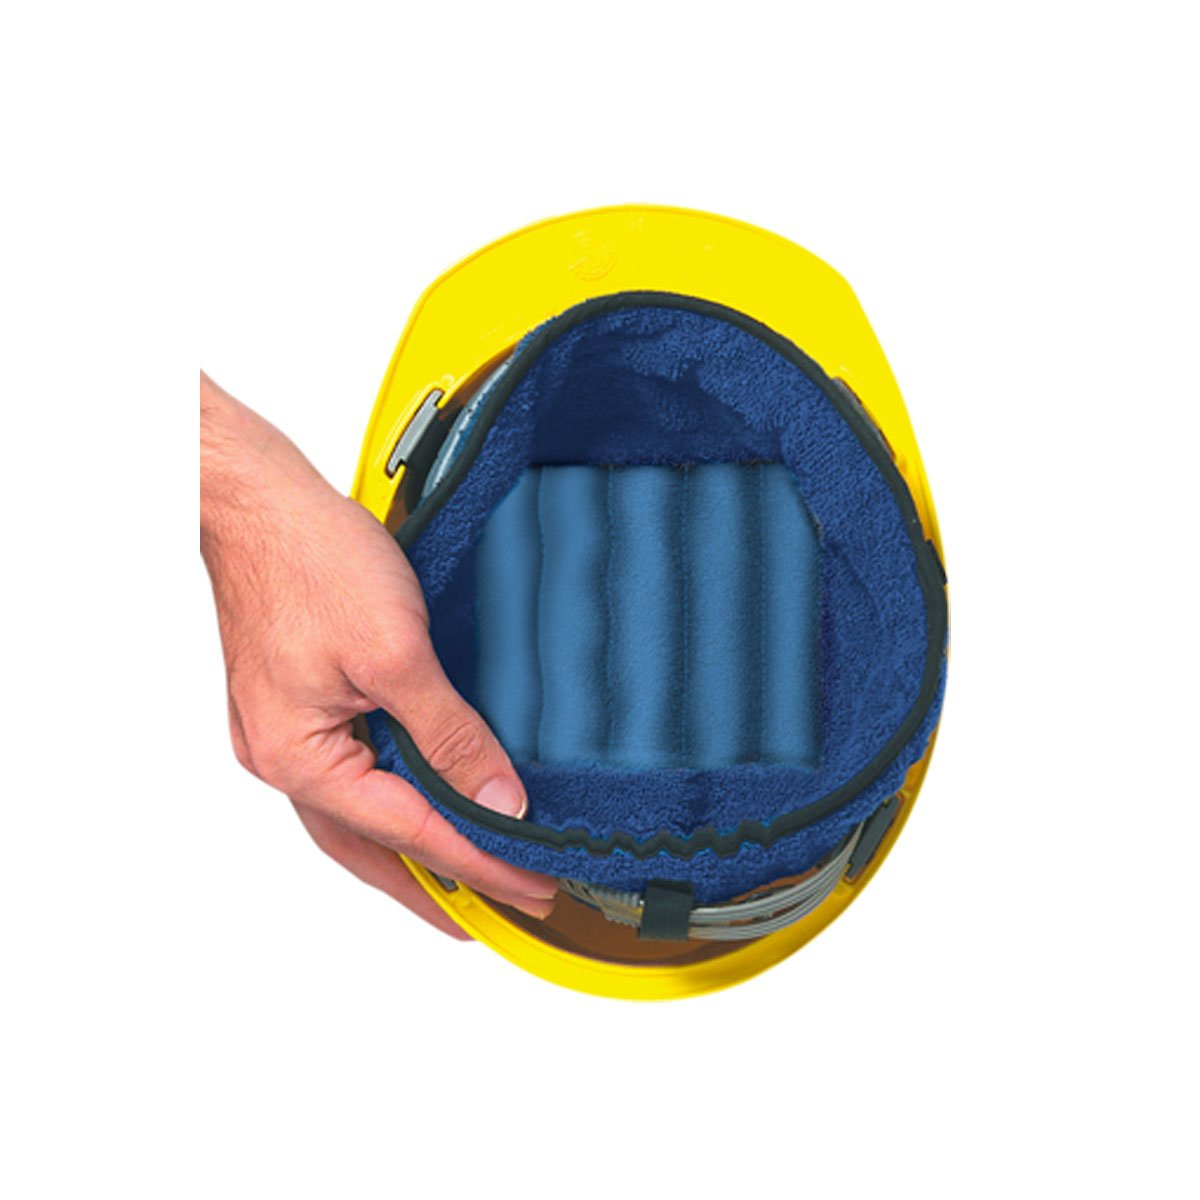 MIRACOOL COOLING TERRY HARD HAT LINER - PACK OF 3